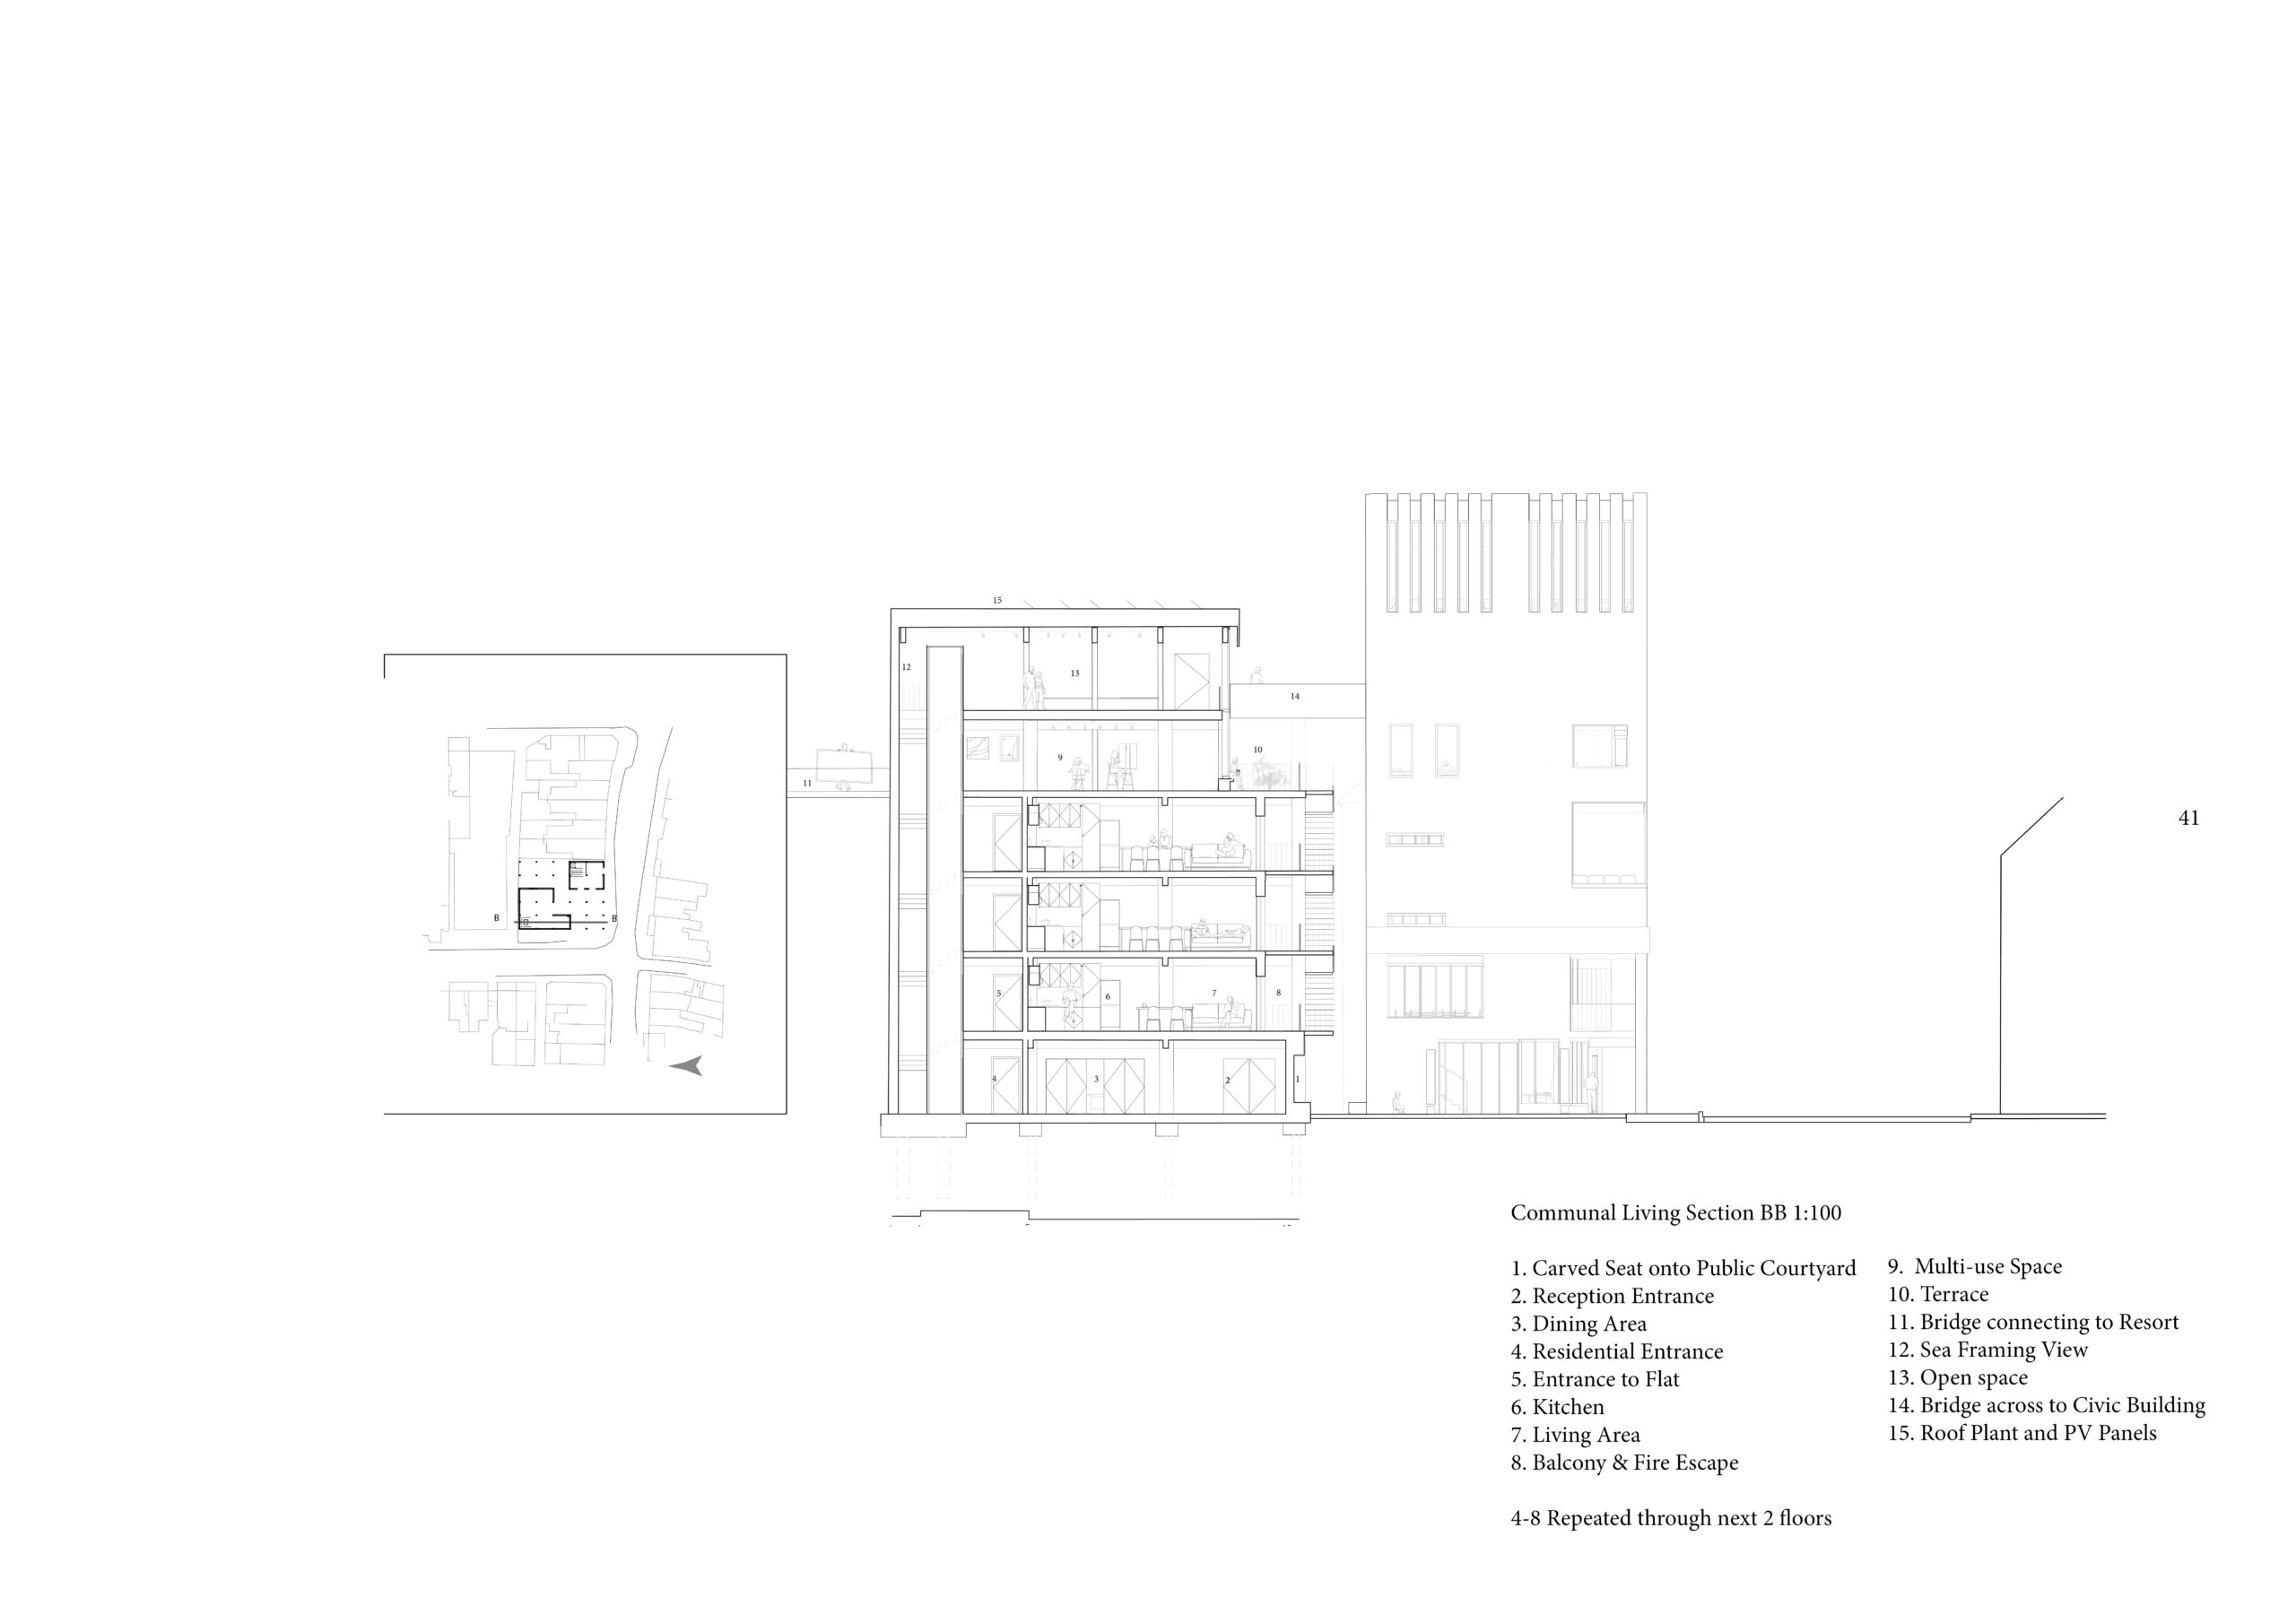 Residential building section